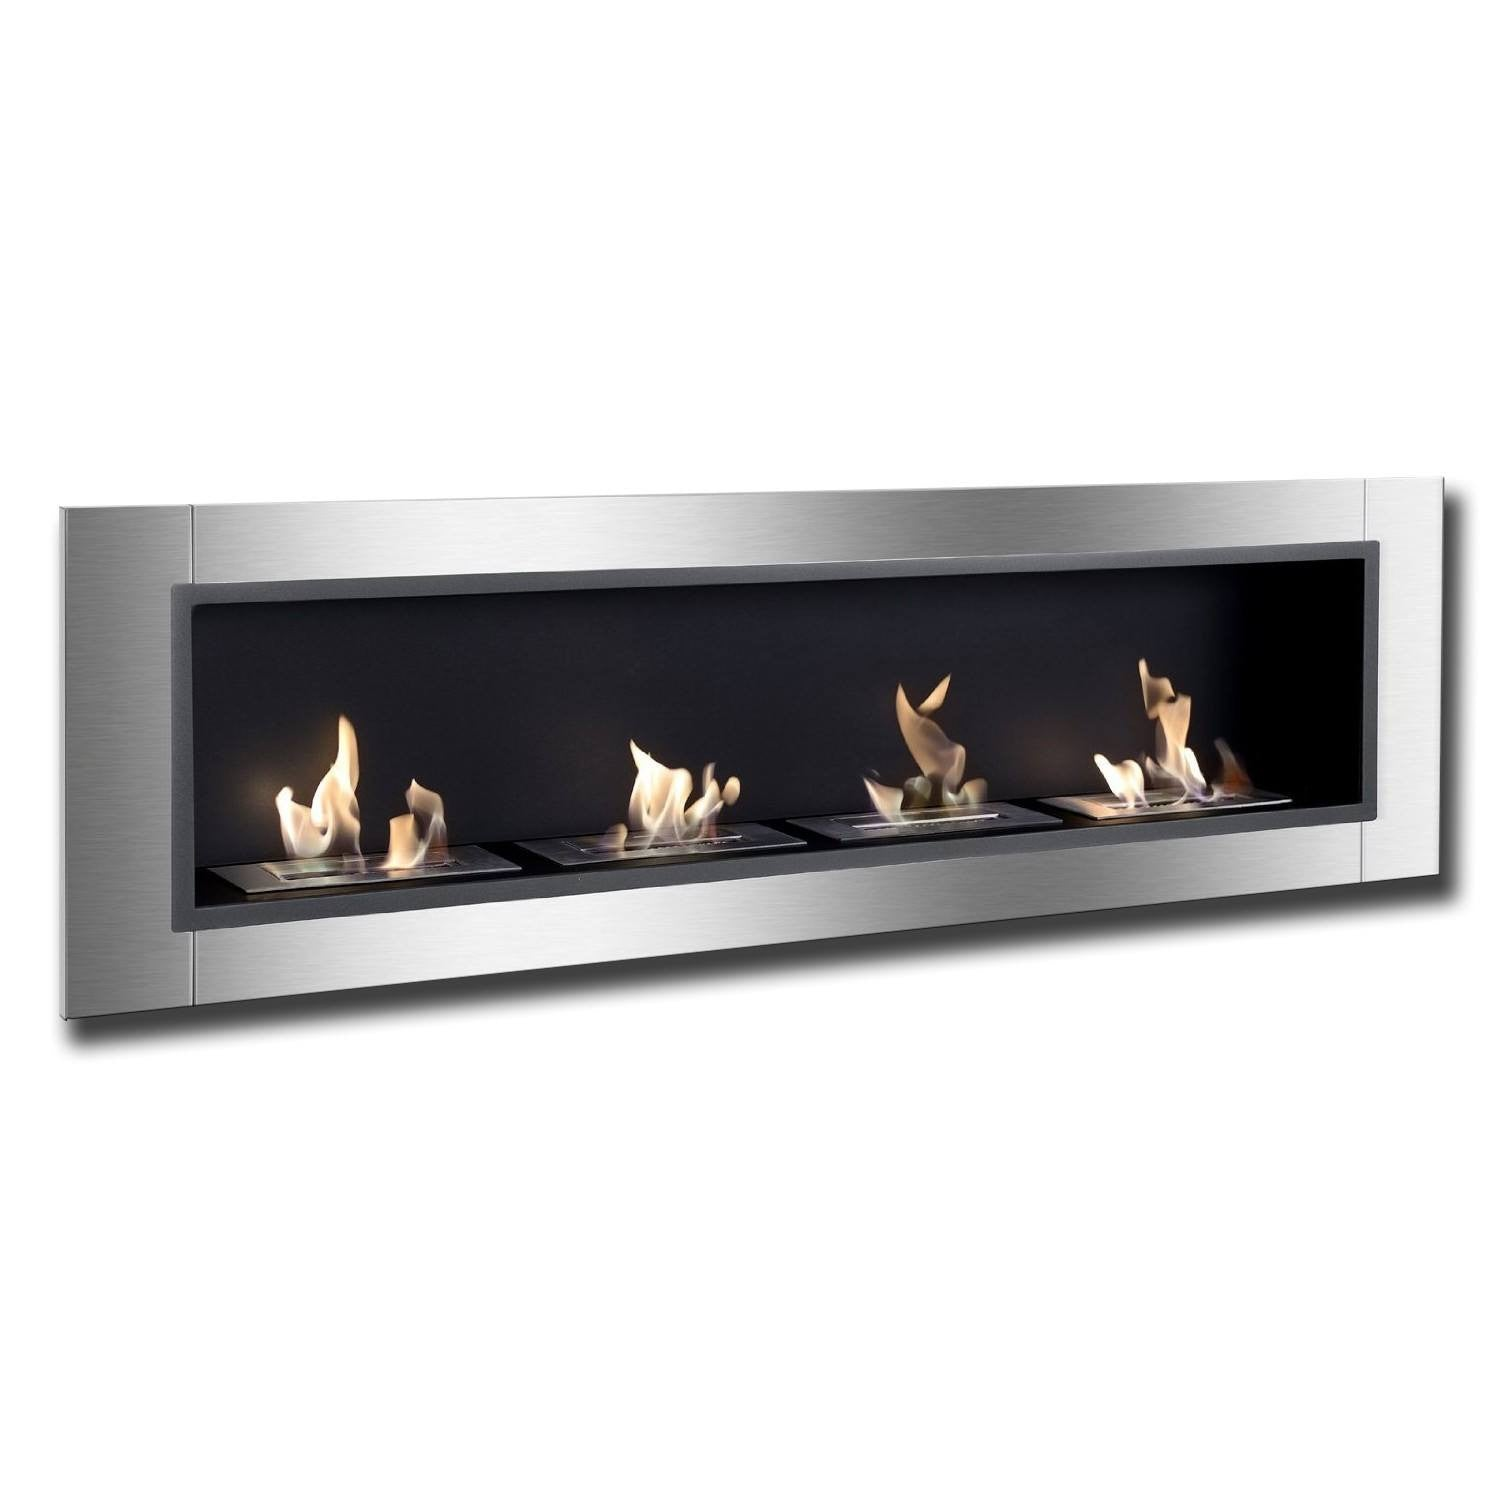 ignis accalia bio ethanol recessed wall fireplace. Black Bedroom Furniture Sets. Home Design Ideas